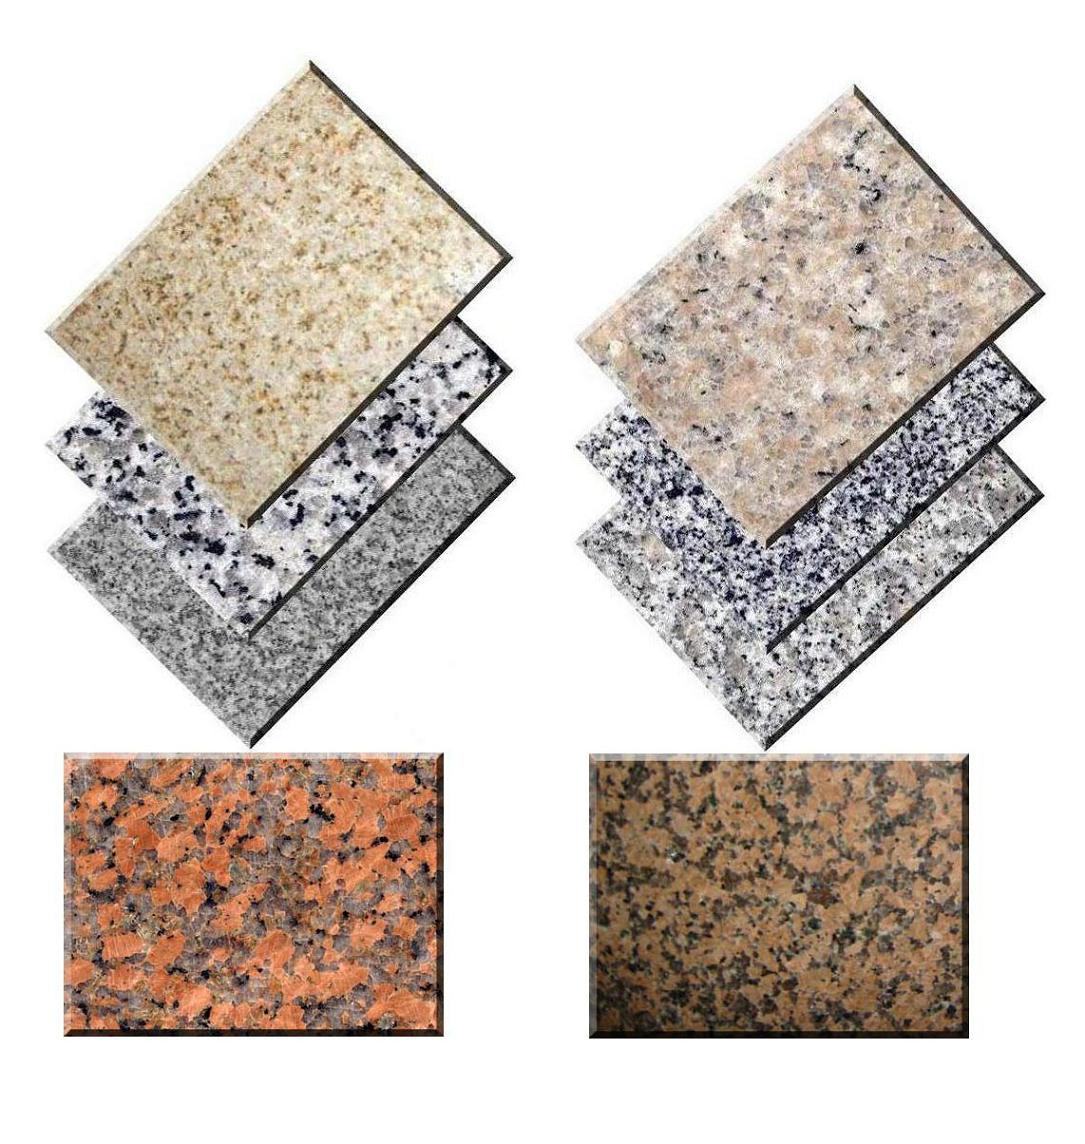 Granite And Marble Tiles Click On Image To Enlarge